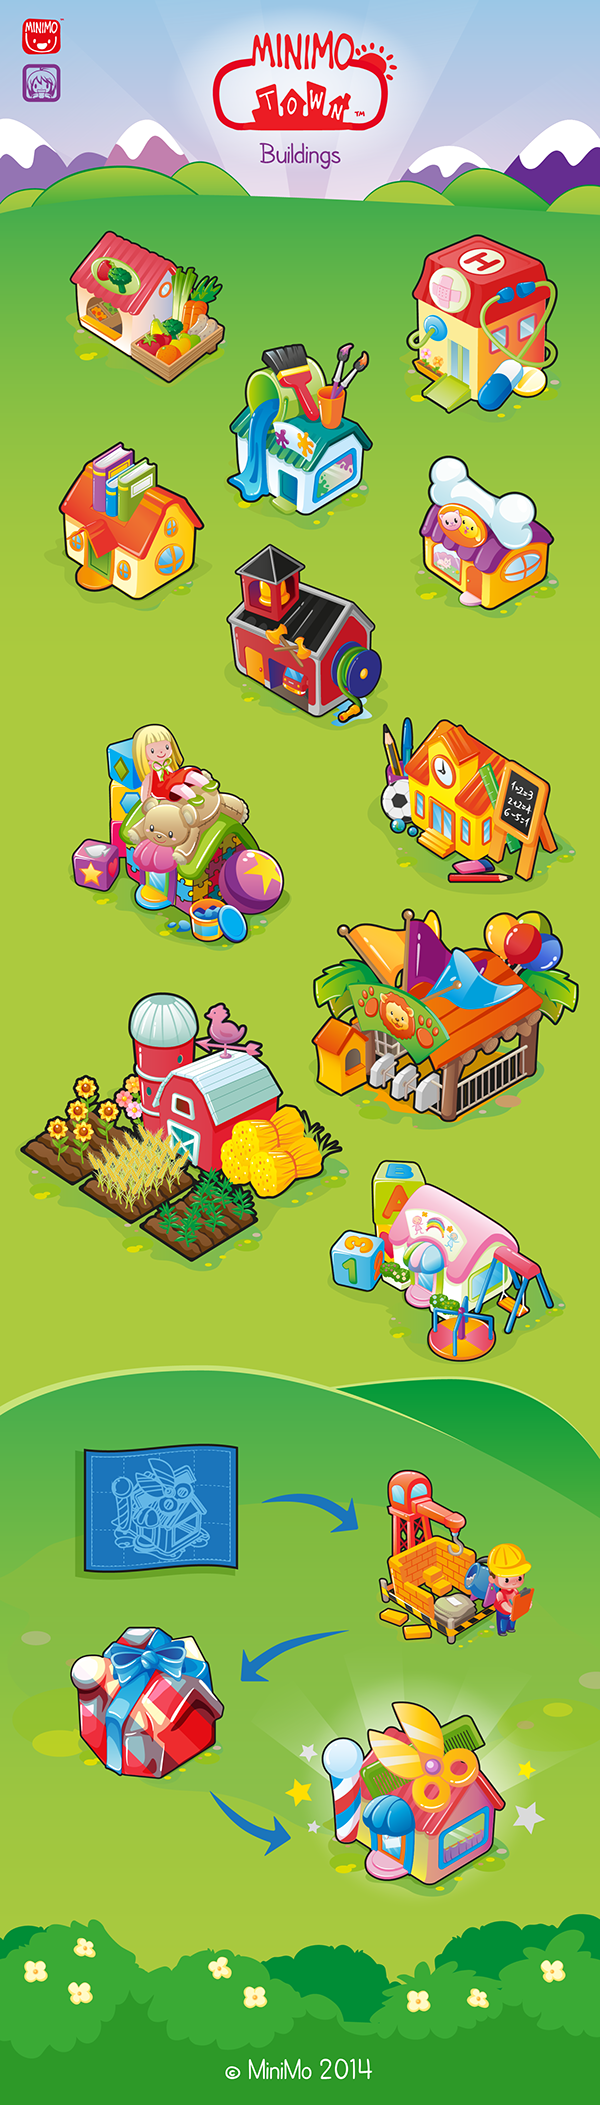 minimo town game children buildings Game Assets colorful kids